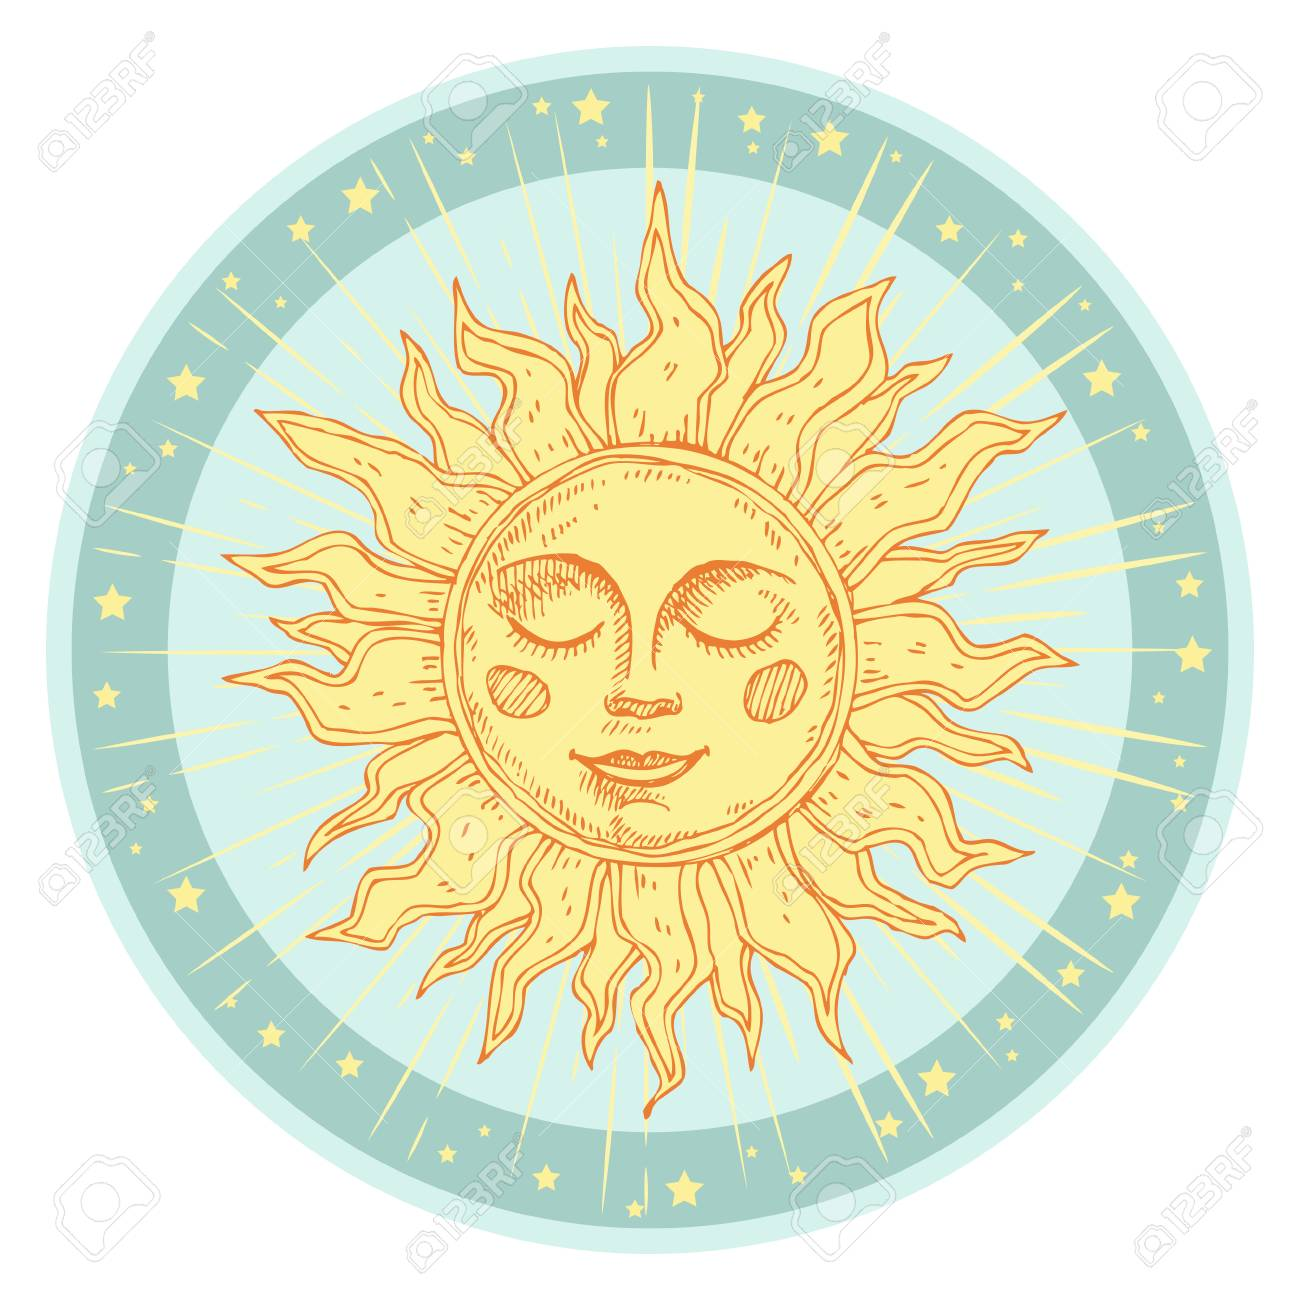 Hand drawn sun with face and starburst stylized as engraving. Can be used as print for T-shirts and bags, cards, decor element. Vector astrology symbol - 93203117